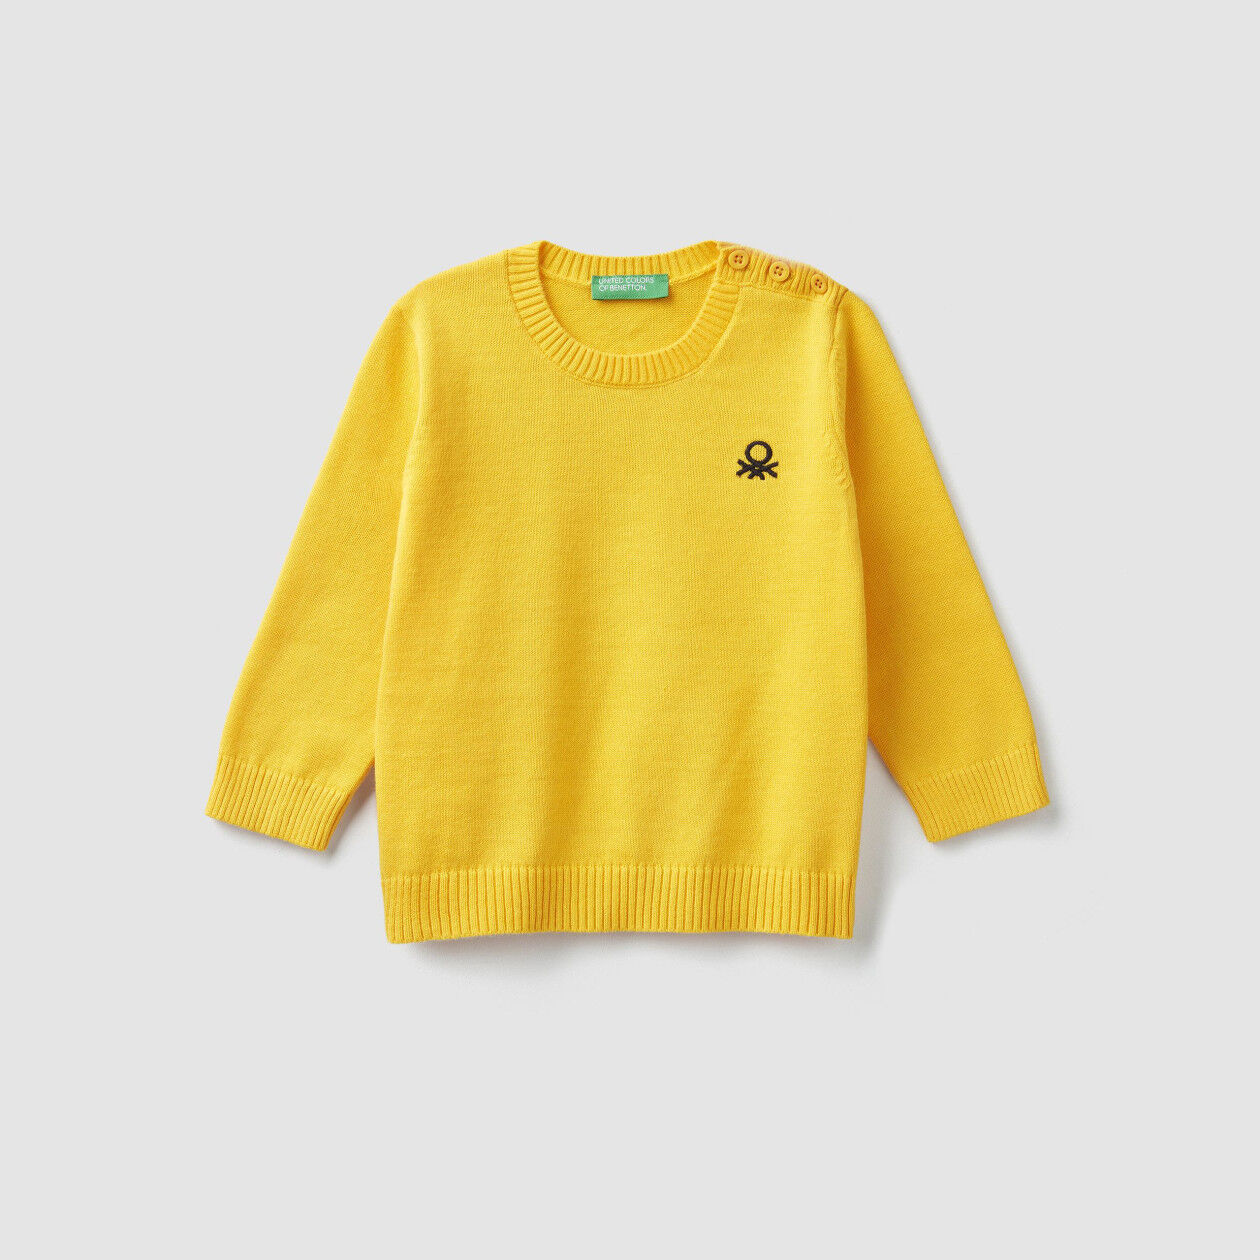 Sweater with logo and buttons